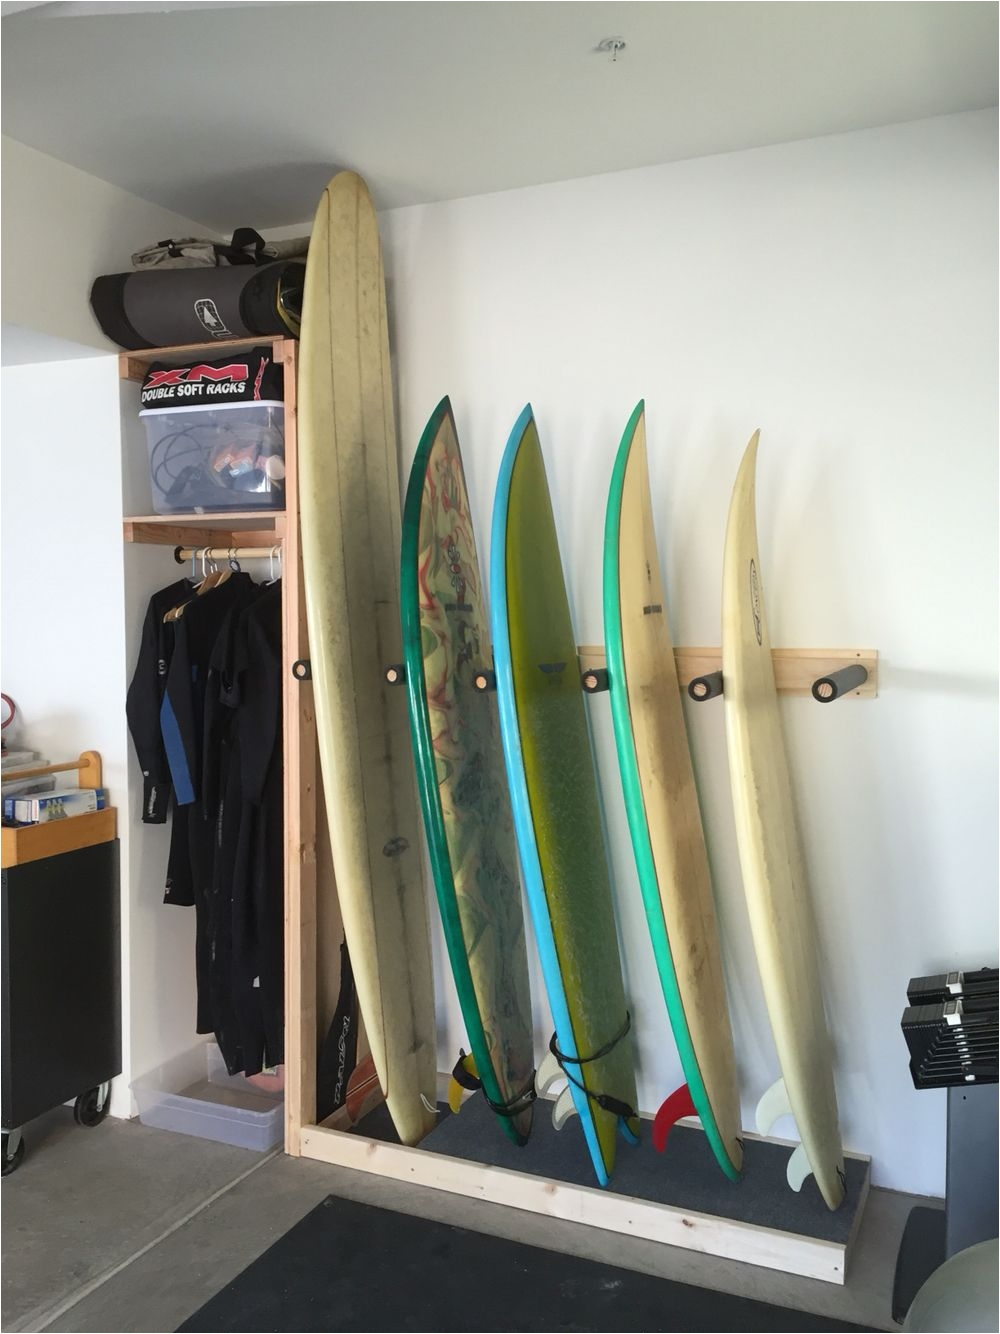 Wall Mounted Surfboard Rack Surf Rack Build with A Shelf Cubby for Wetsuits Accessories